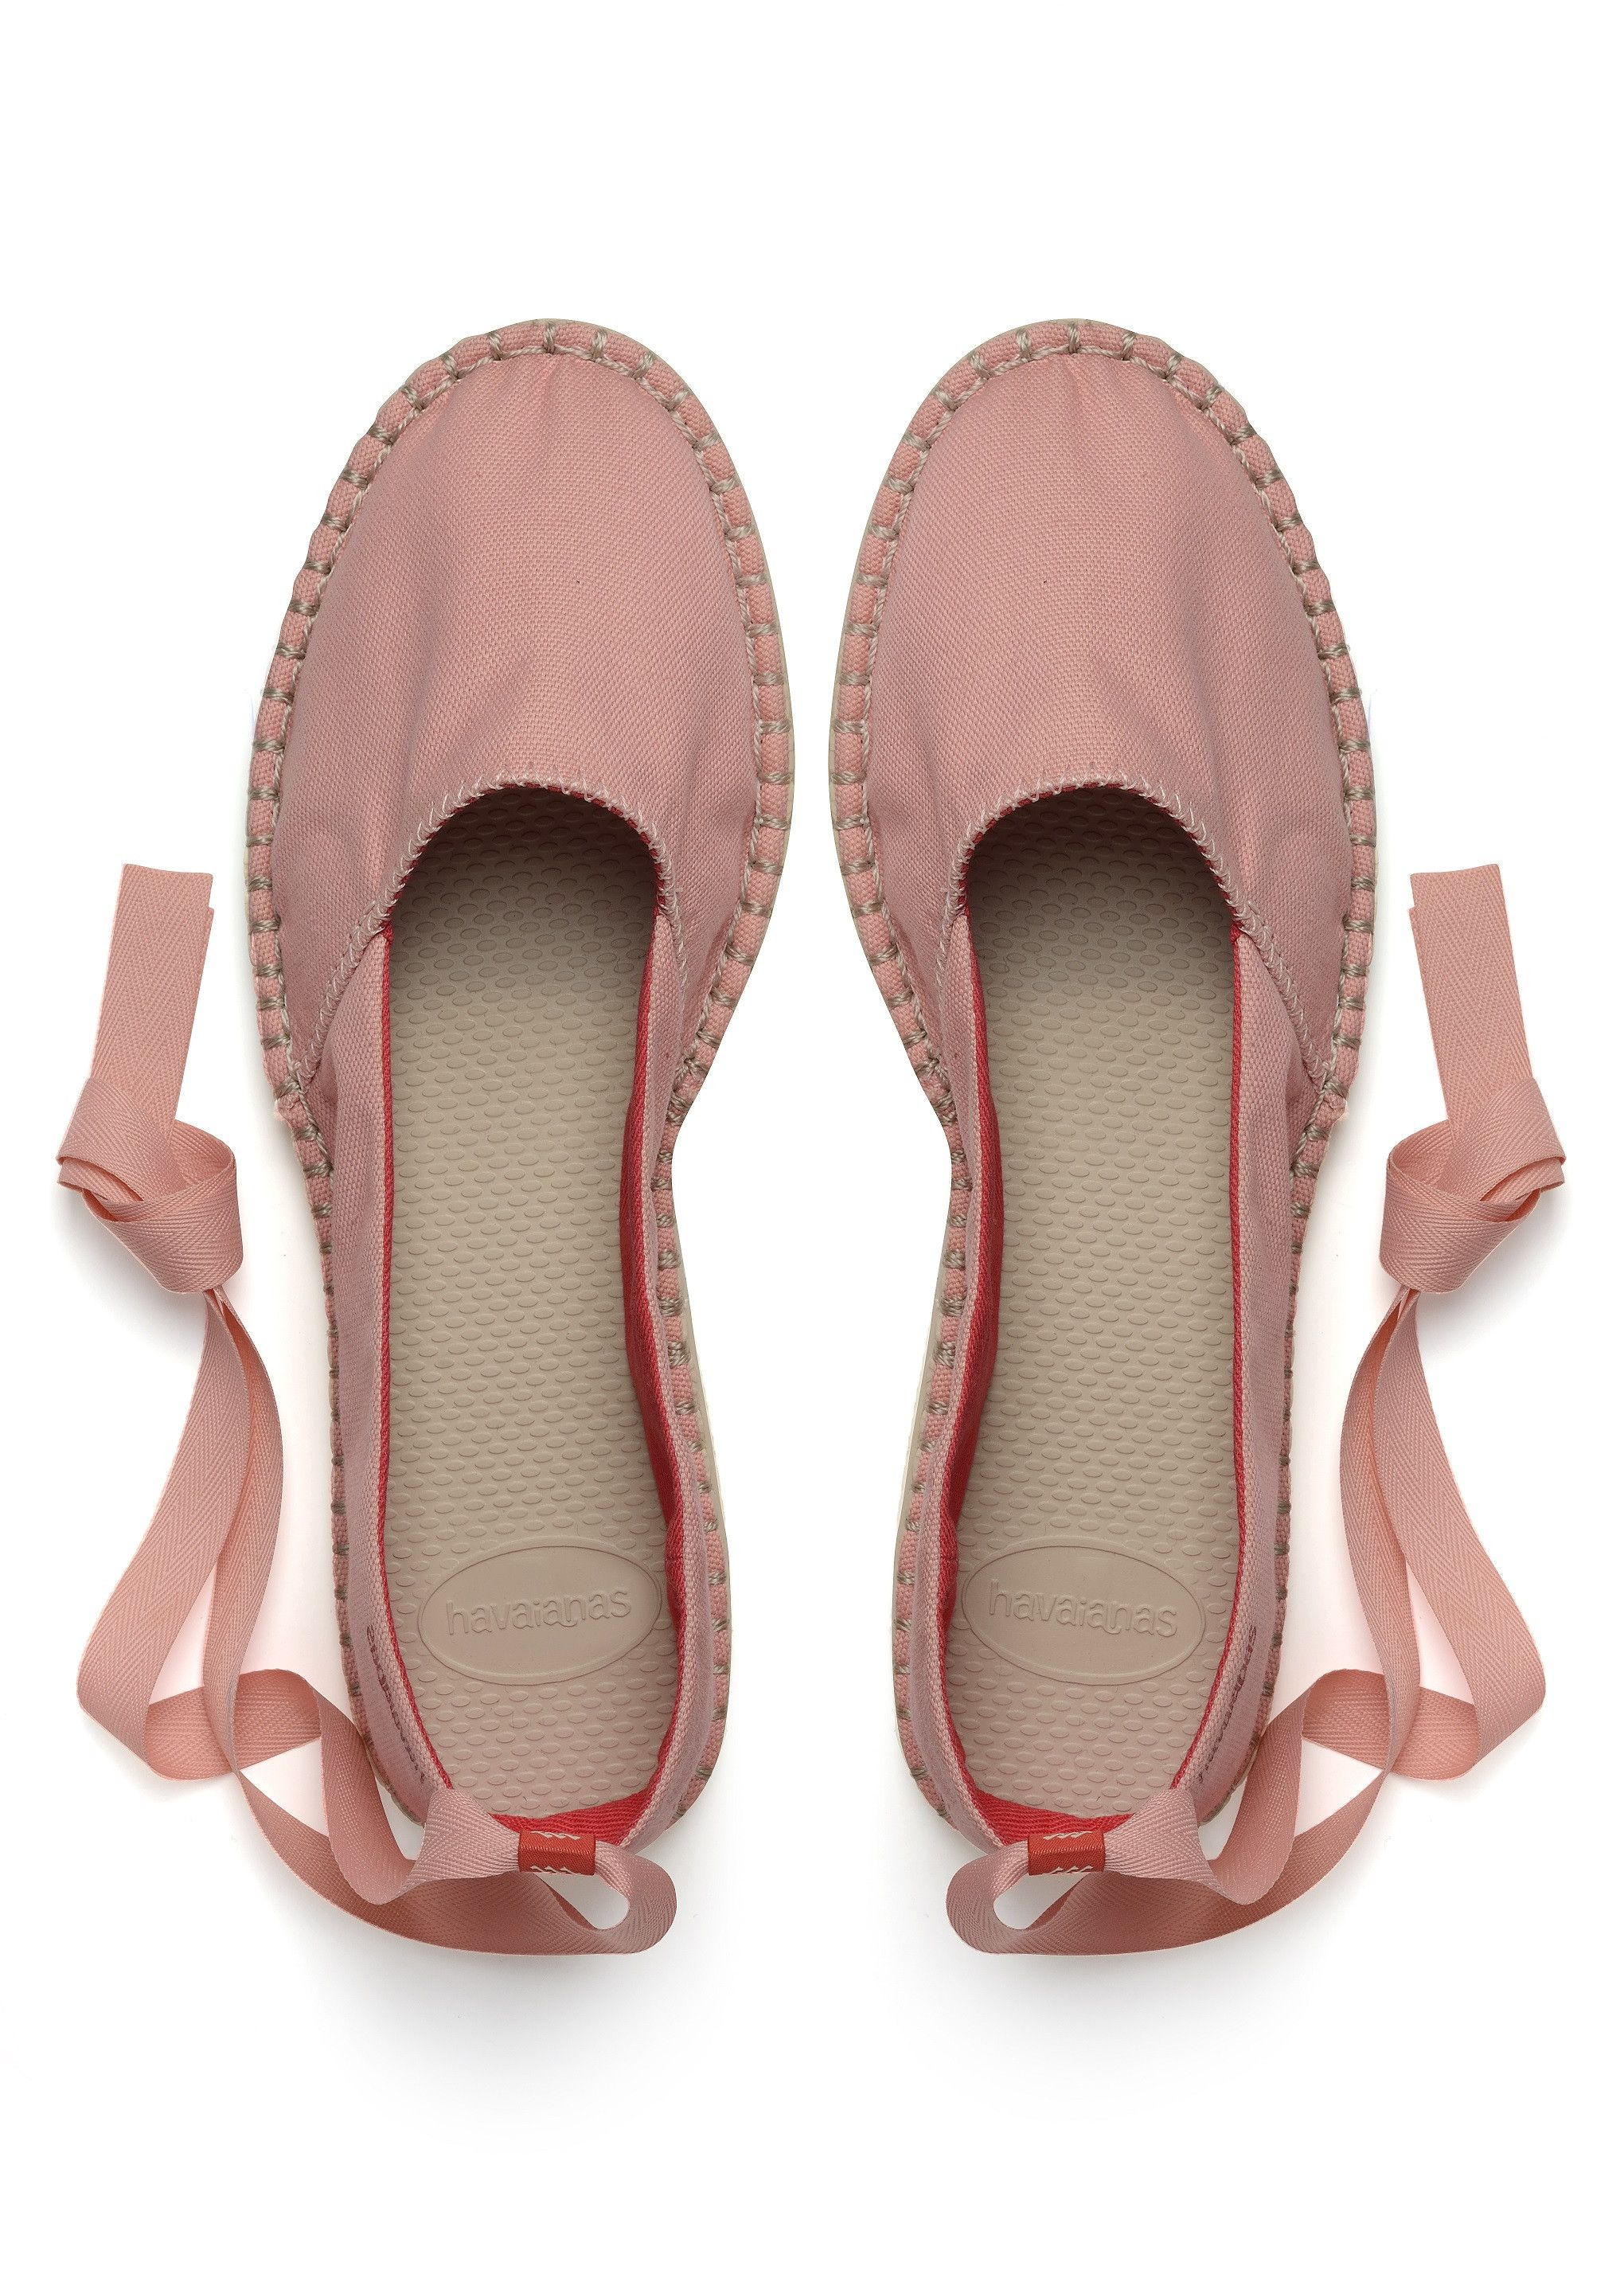 173963ff6 Havaianas Origine Slim Espadrille Light Rose Price From: $44.00 https://www.